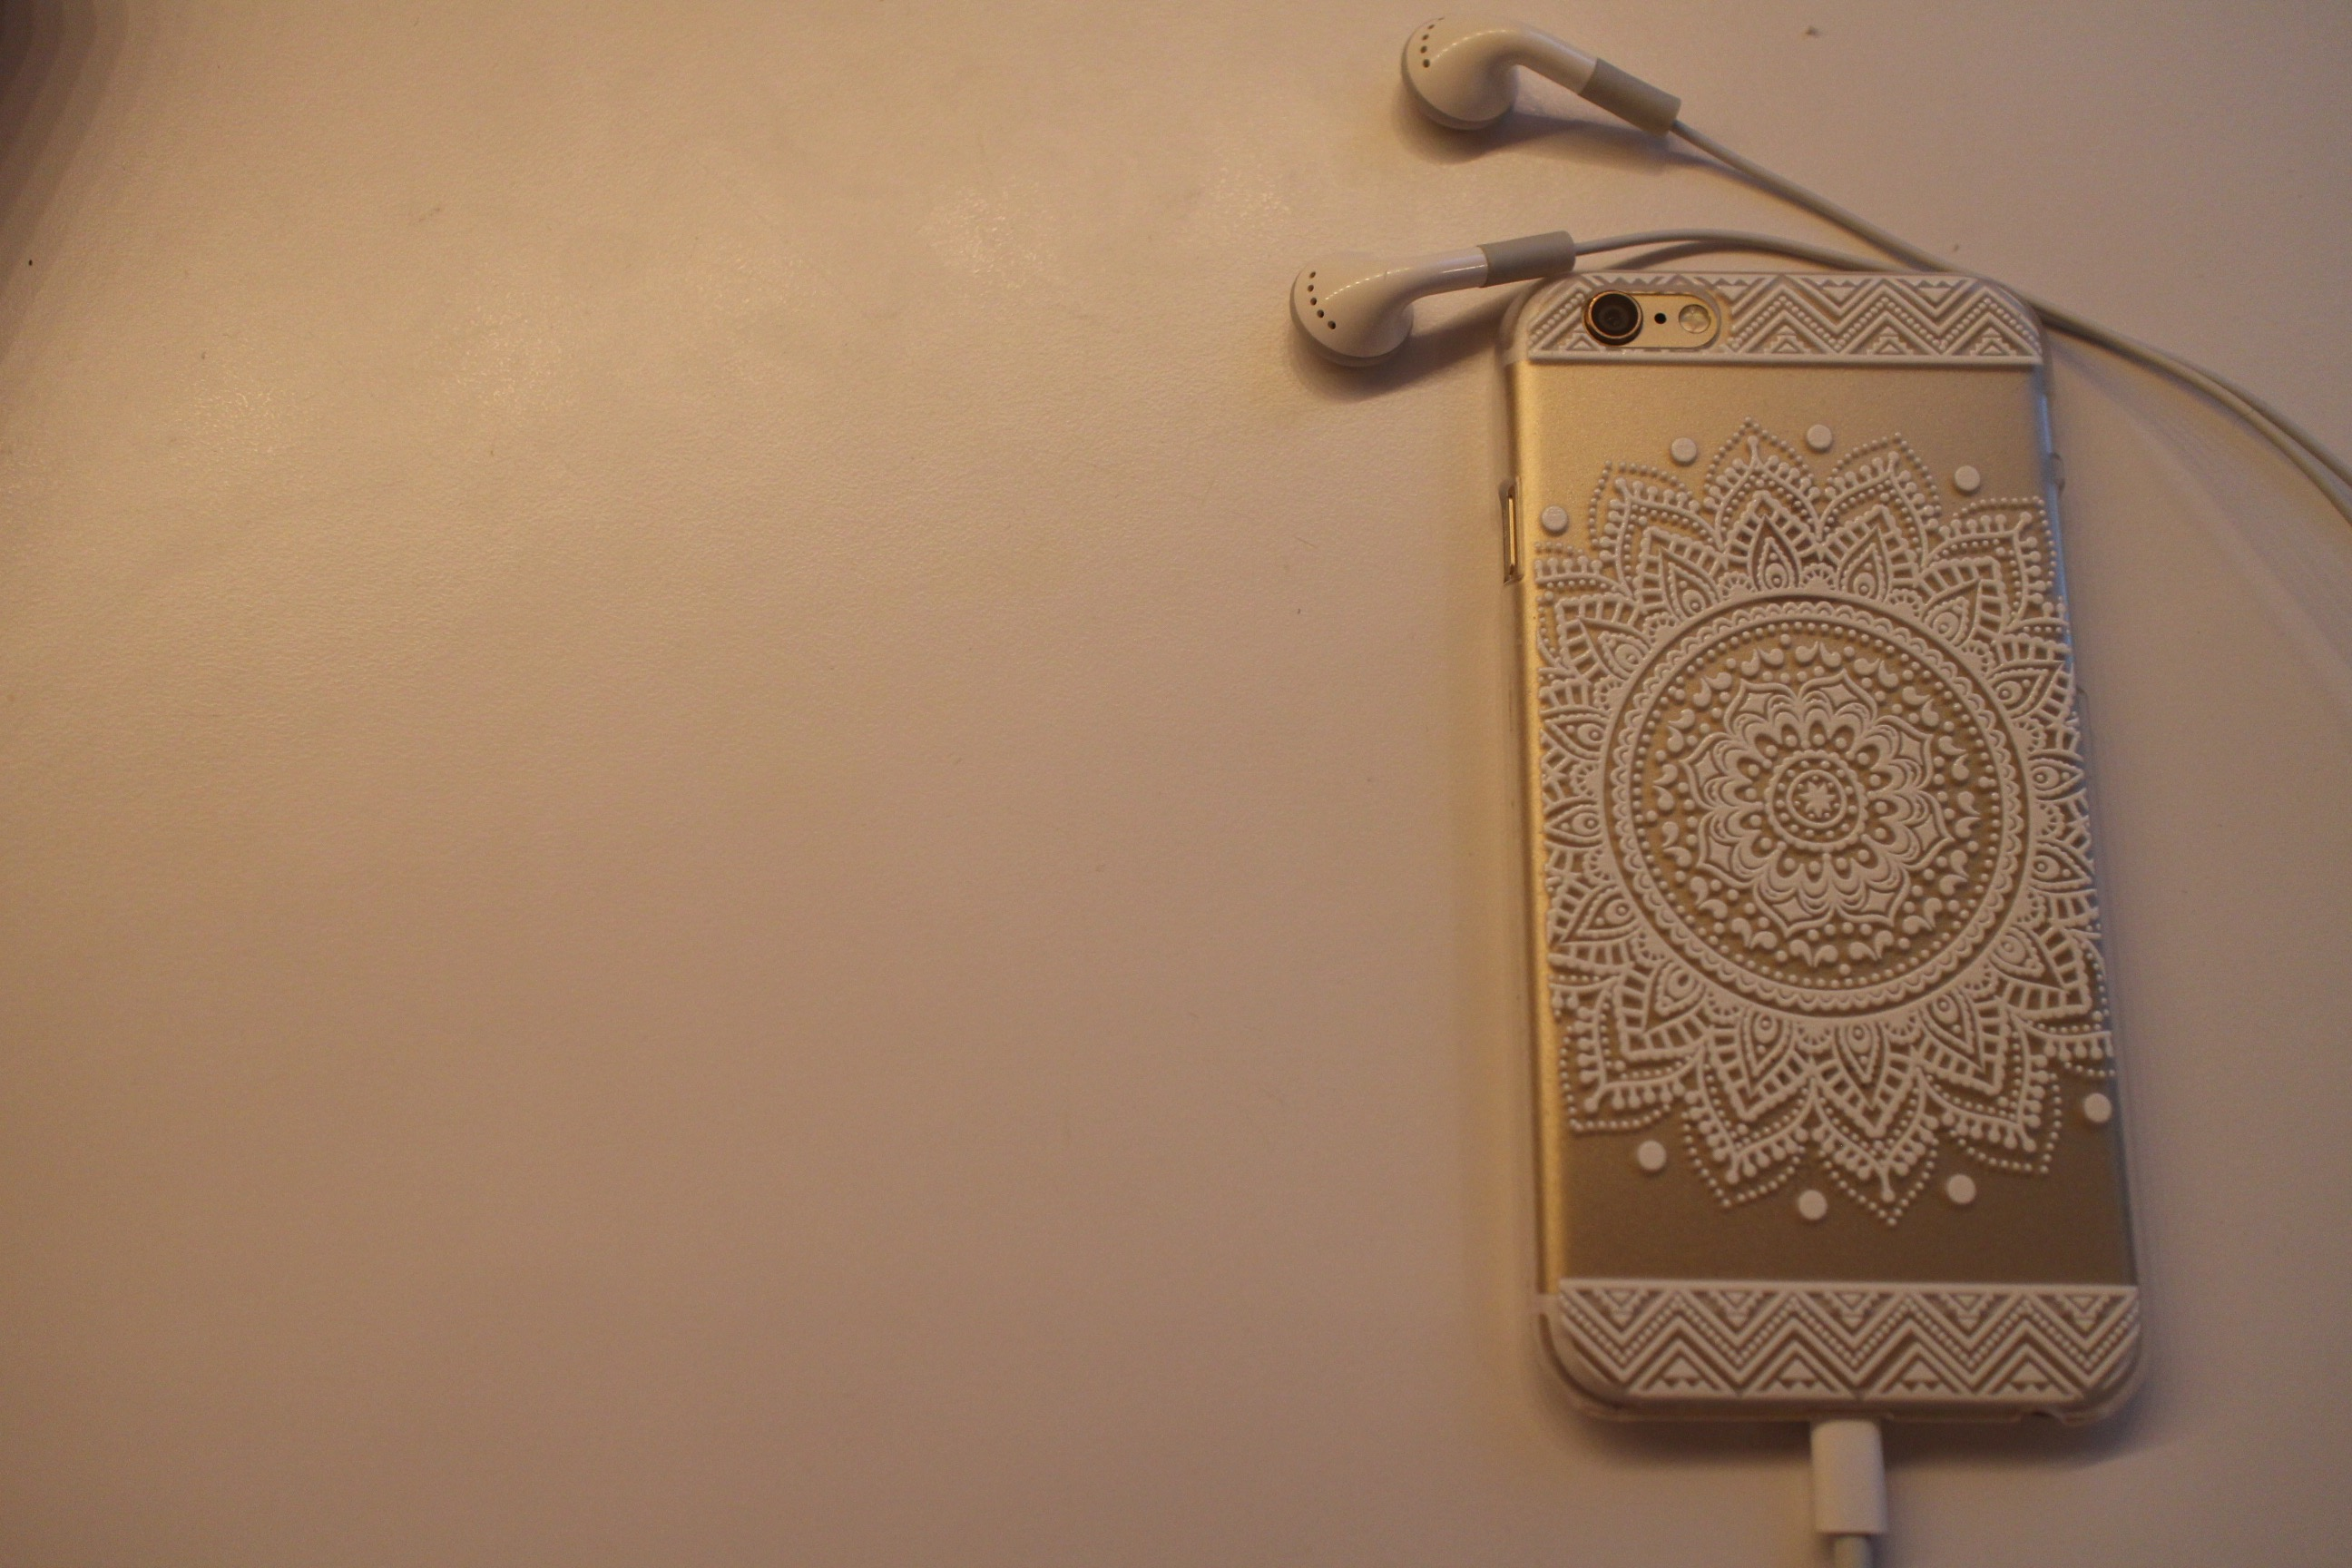 newest cf2d1 41d80 iPhone 6 Henna Case